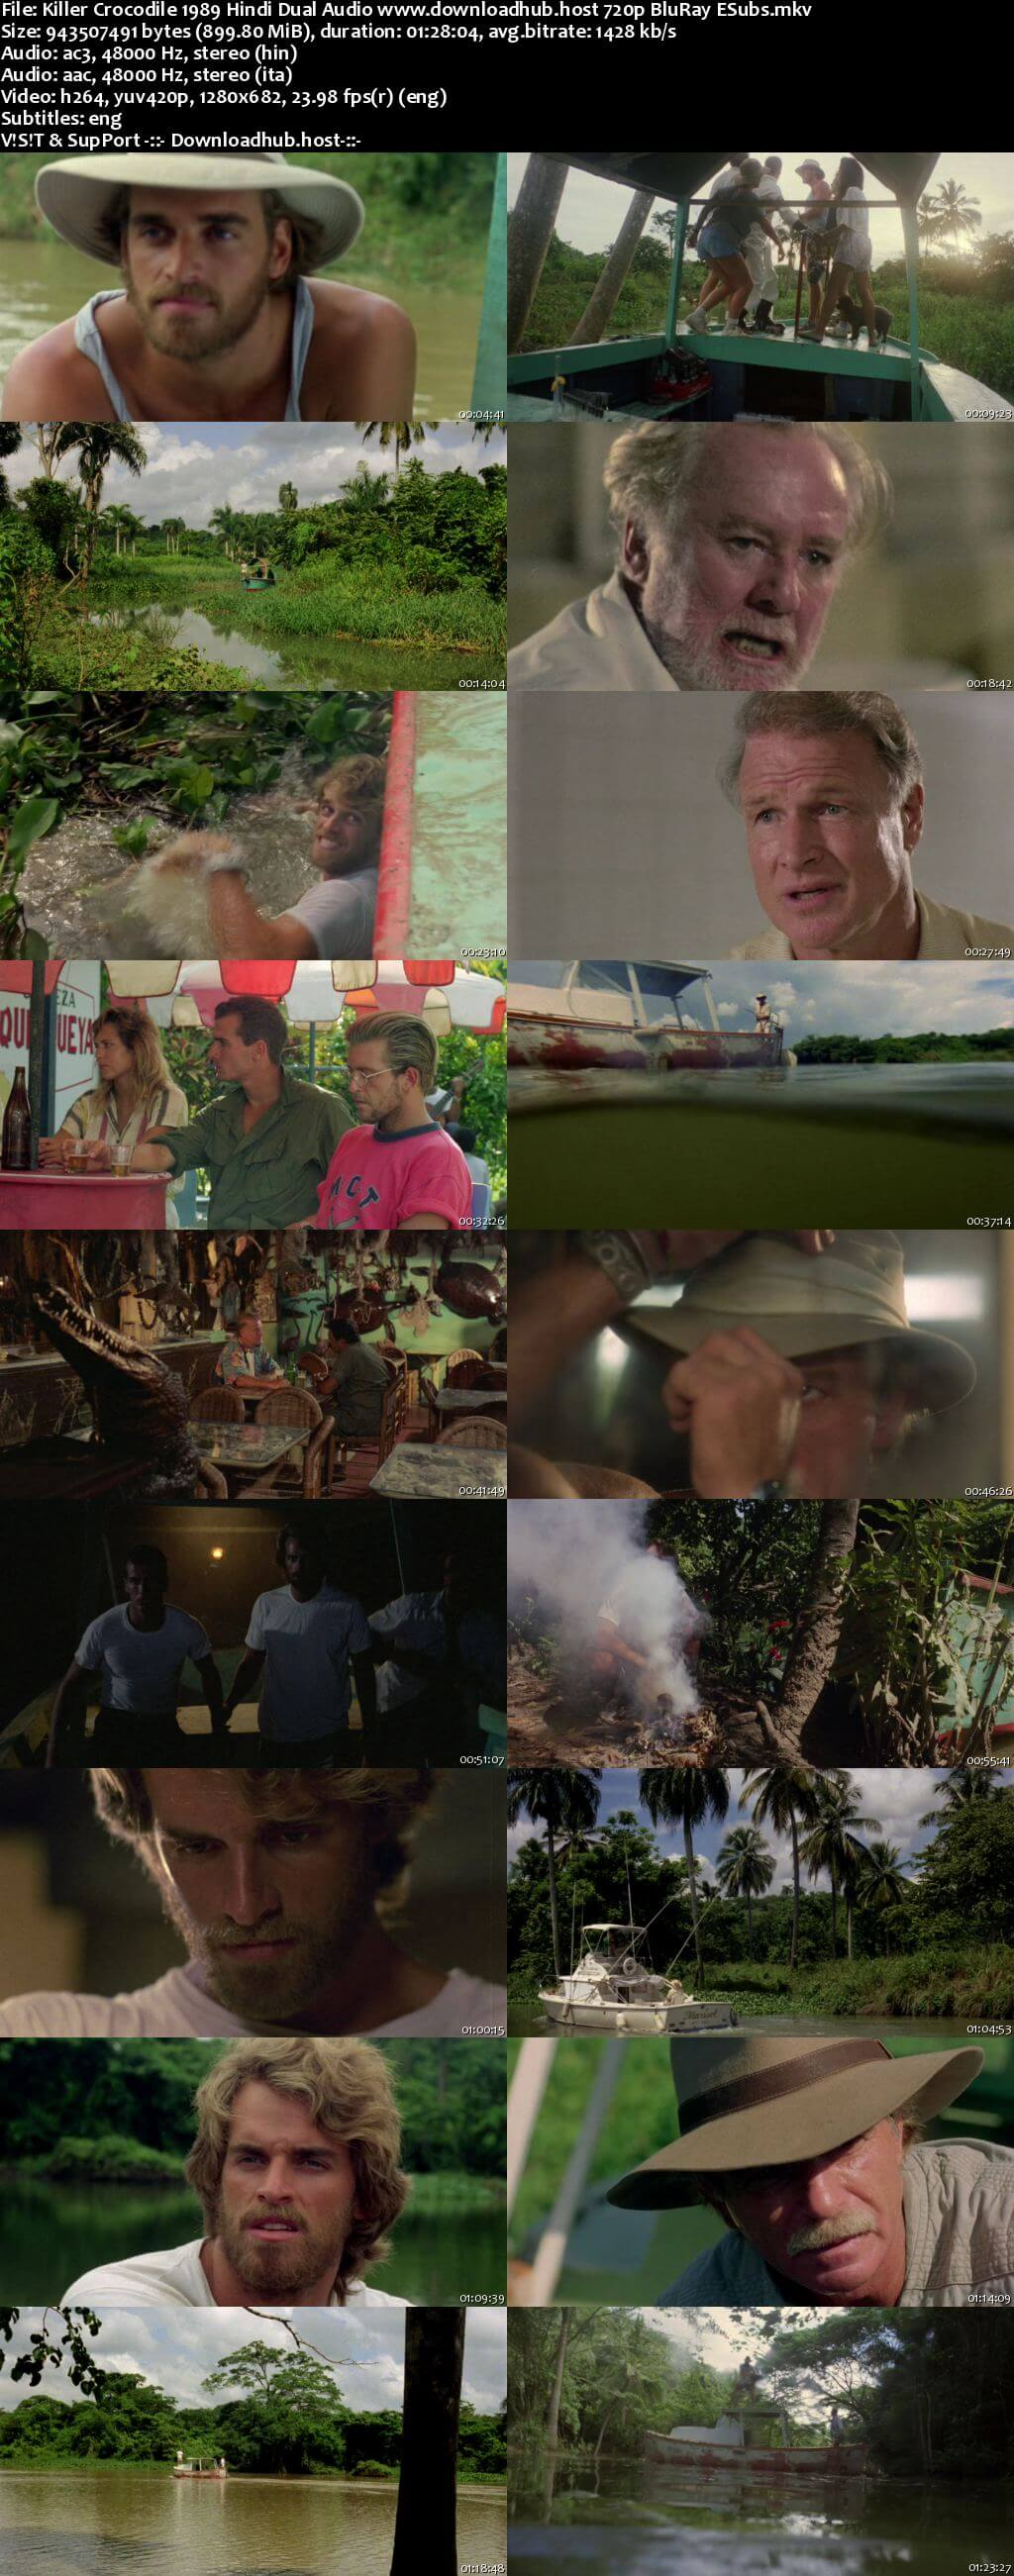 Killer Crocodile 1989 Hindi Dual Audio 720p BluRay ESubs